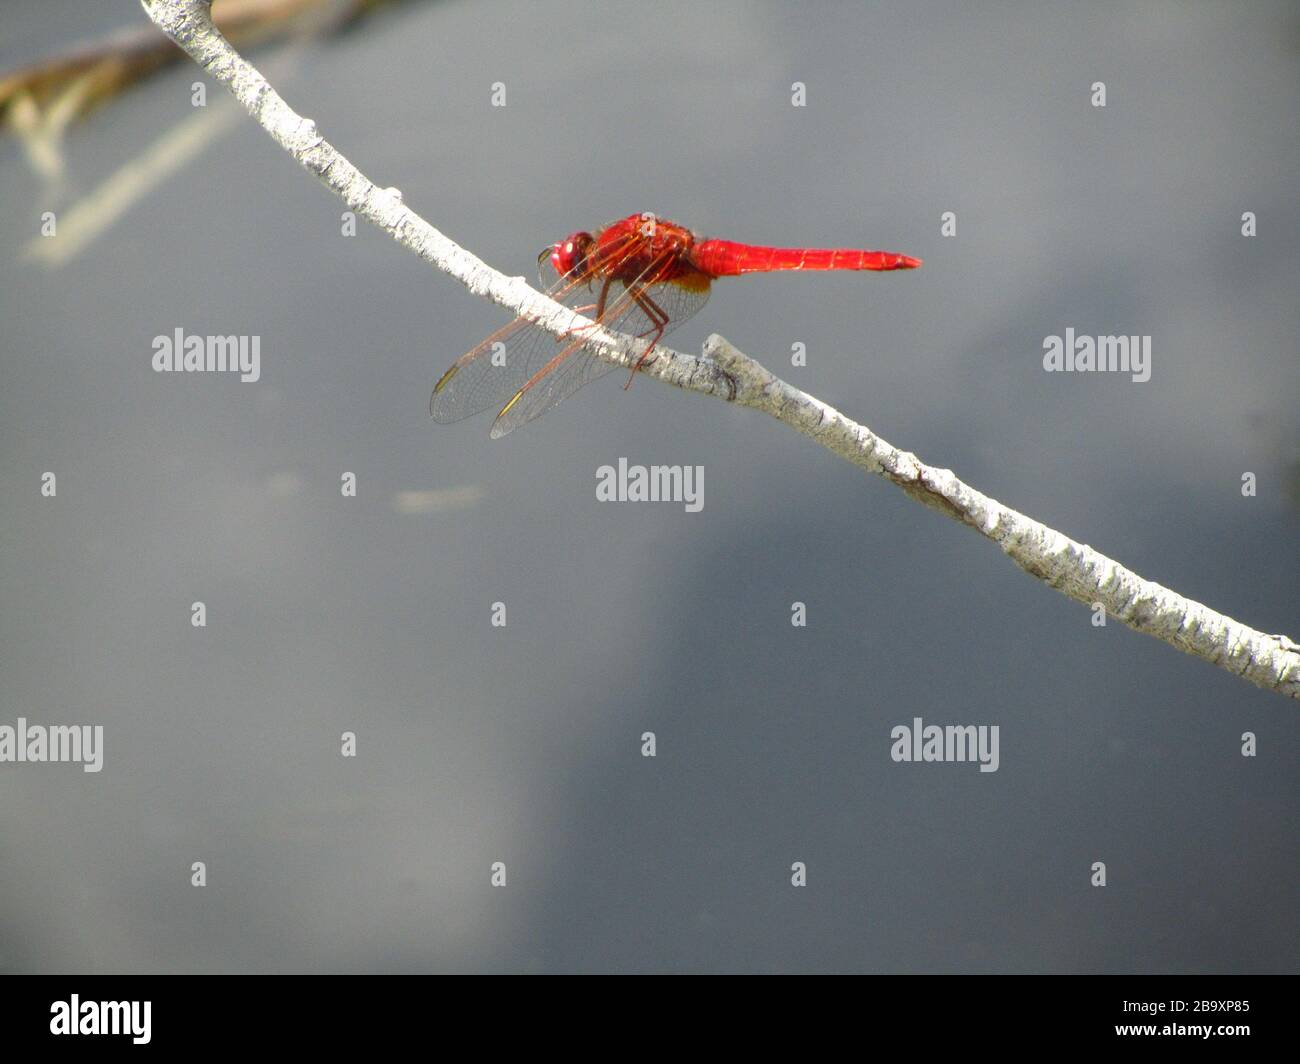 Closeup of a Scarlet dragonfly on a tree branch under the sunlight with a blurry background Stock Photo